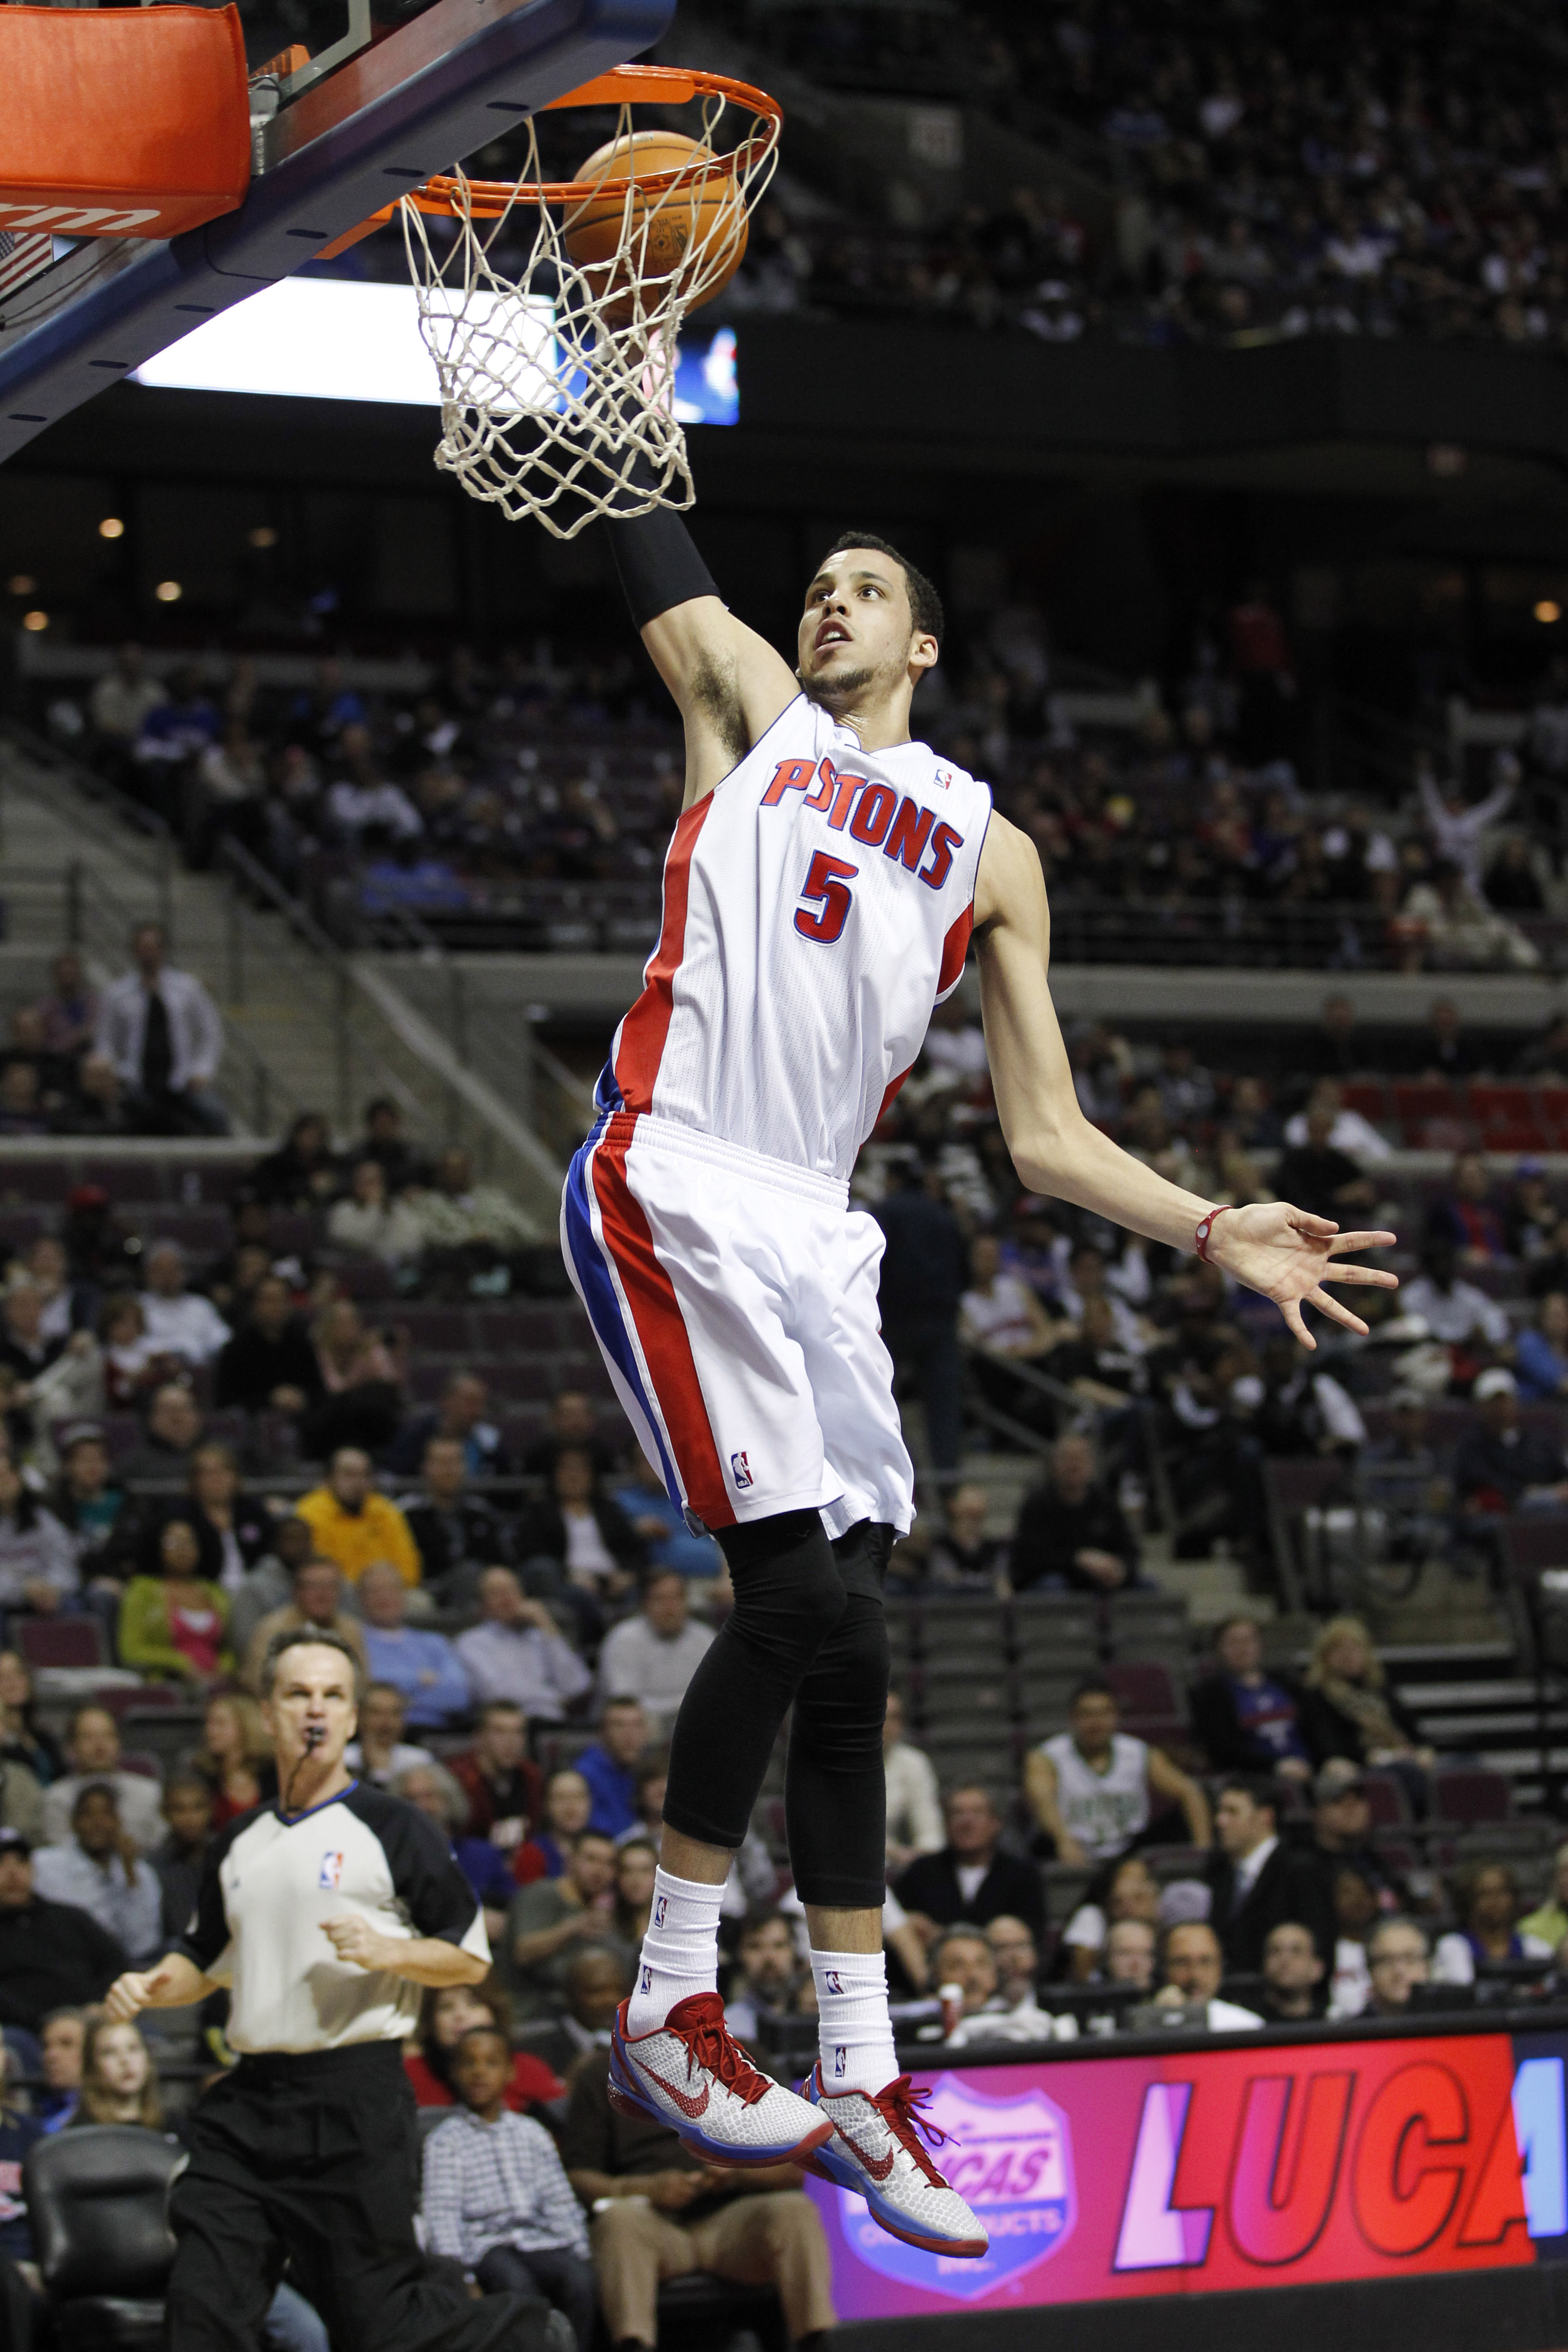 AUBURN HILLS, MI - FEBRUARY 11:  Austin Day #5 of the Detroit Pistons look gets in for a dunk while playing the Miami Heat at The Palace of Auburn Hills on February 11, 2011 in Auburn Hills, Michigan. Miami won the game 106-92.  (Photo by Gregory Shamus/G